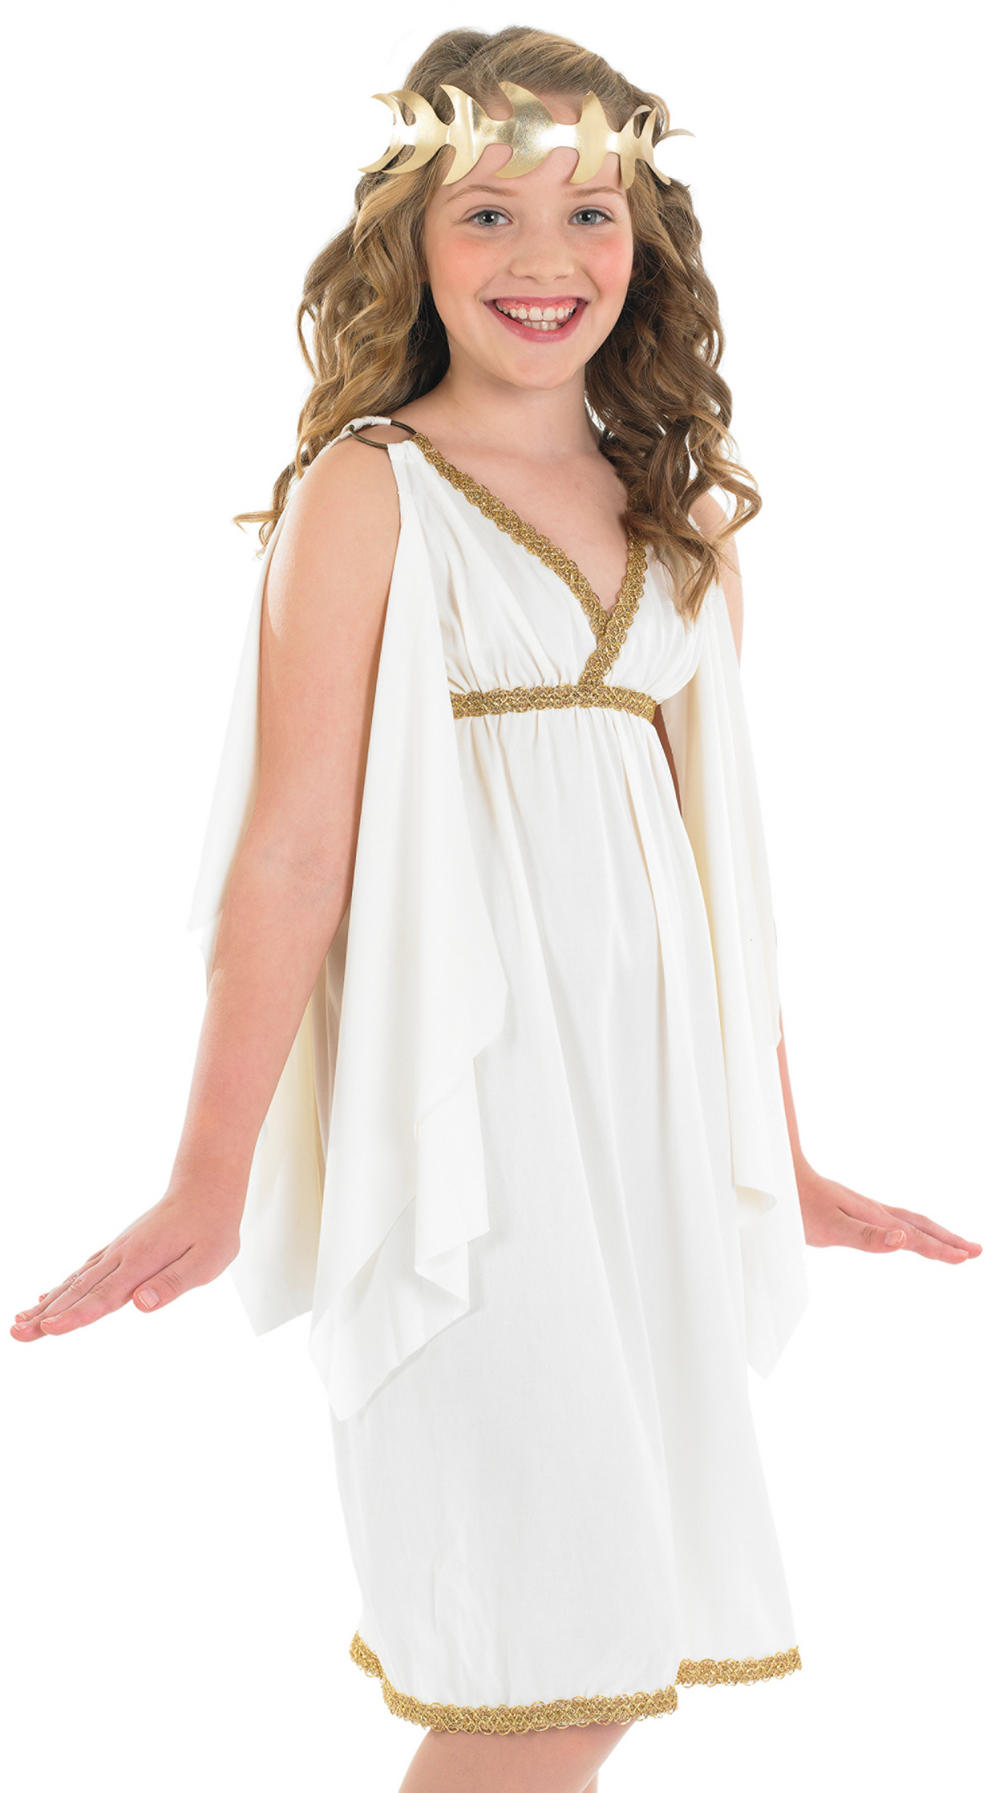 Girlsu0027 Cleopatra Girl Costume  sc 1 st  Mega Fancy Dress & Girlsu0027 Cleopatra Girl Costume | Girlu0027s World Book Day Fancy Dress ...